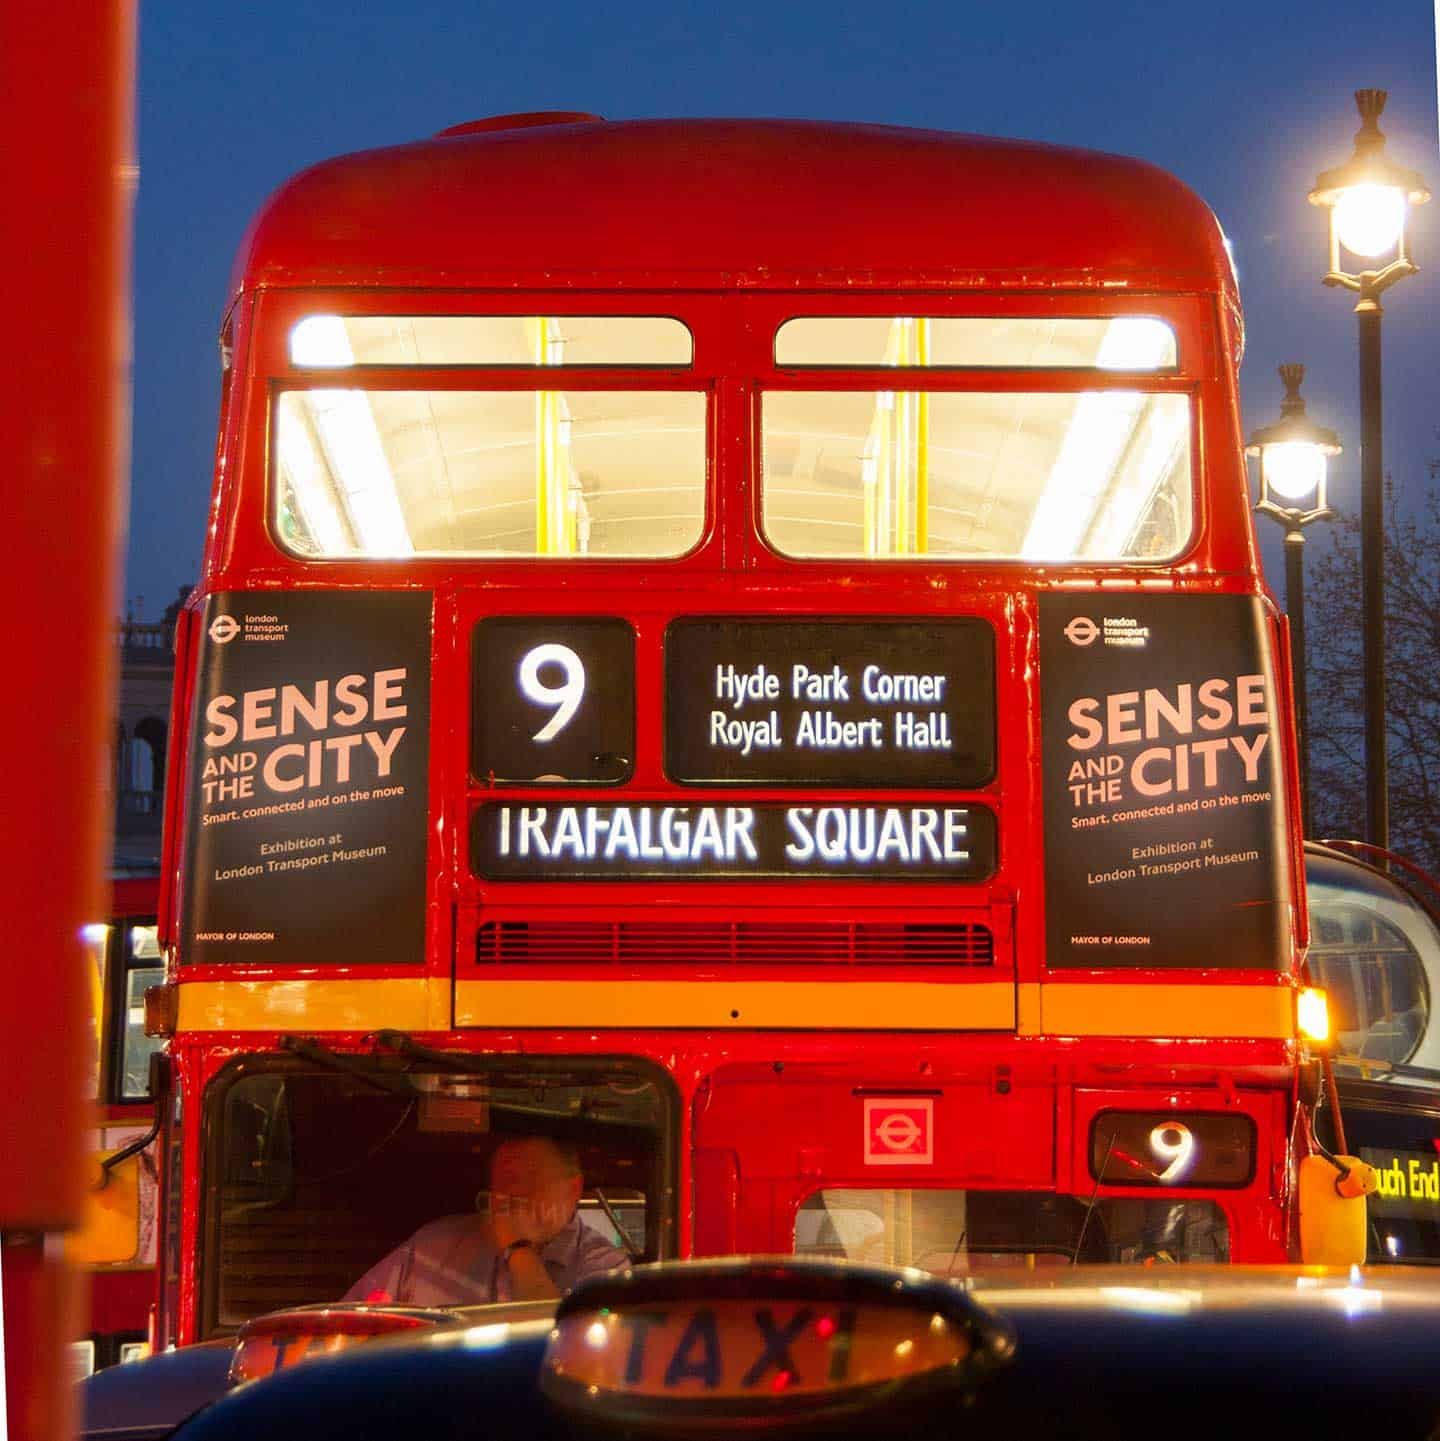 Image of a traditional Routemaster bus in London